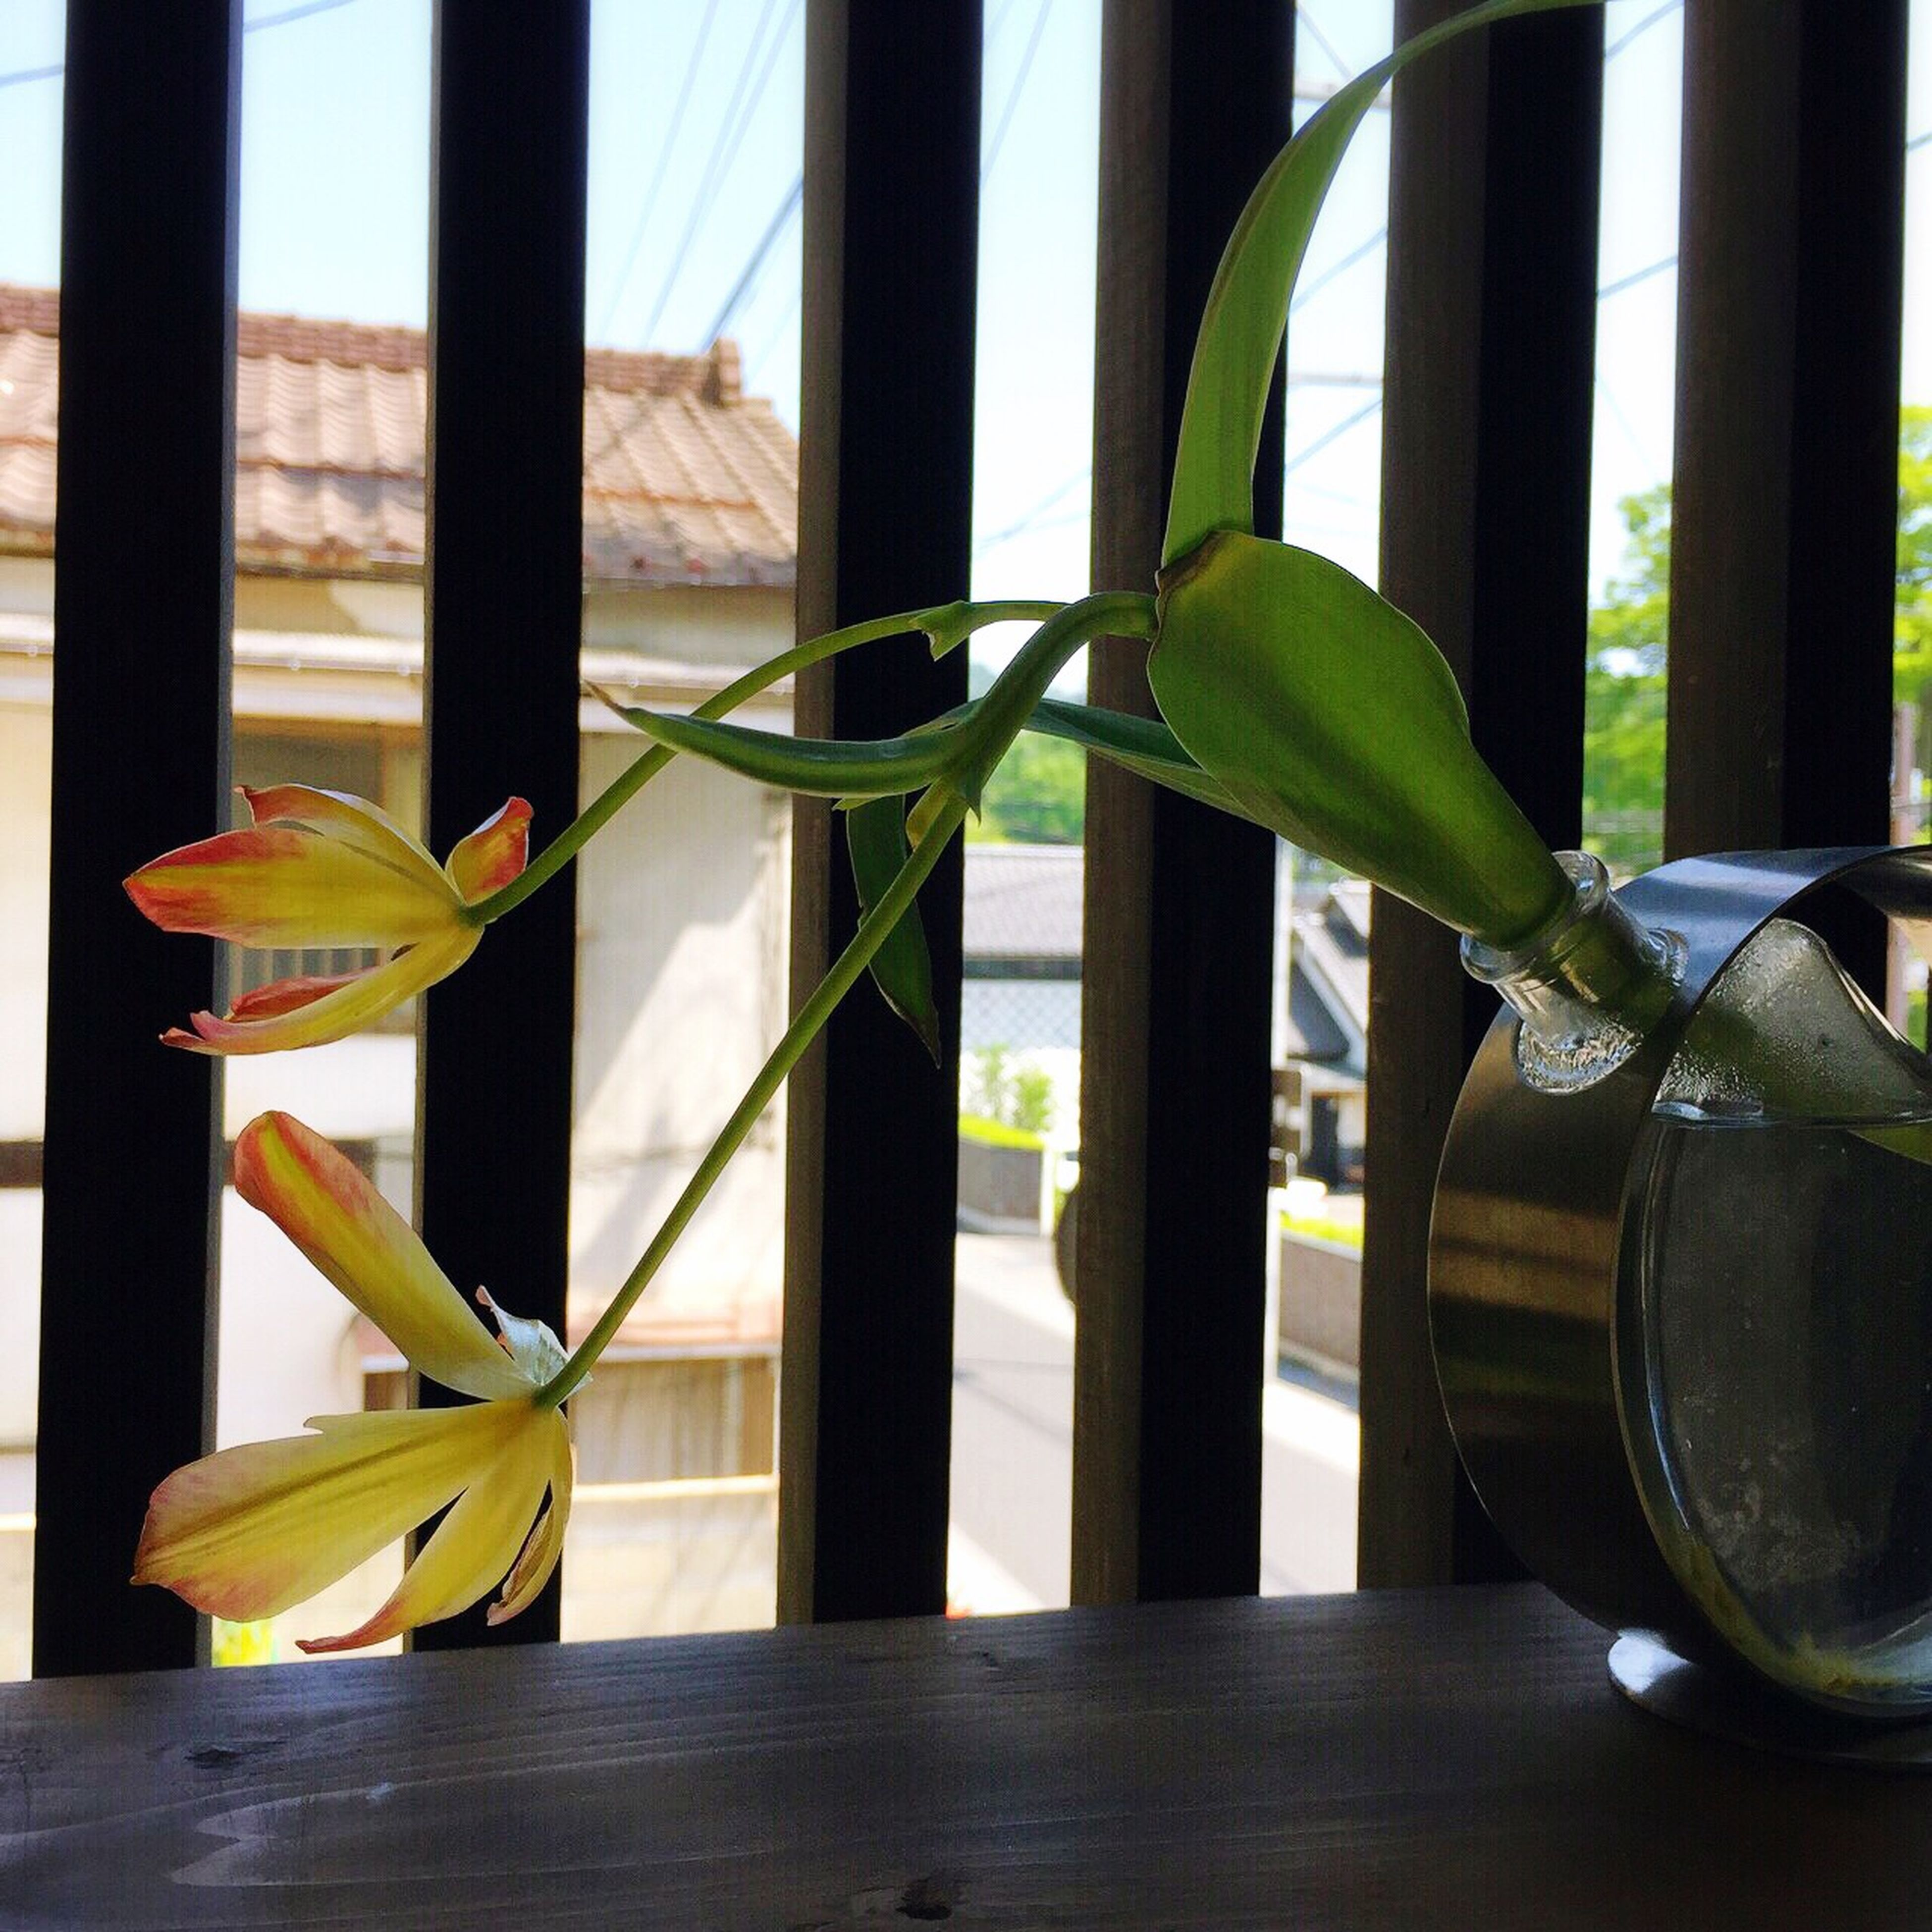 indoors, window, glass - material, table, home interior, transparent, potted plant, sunlight, chair, window sill, close-up, day, built structure, plant, architecture, vase, no people, glass, wood - material, metal